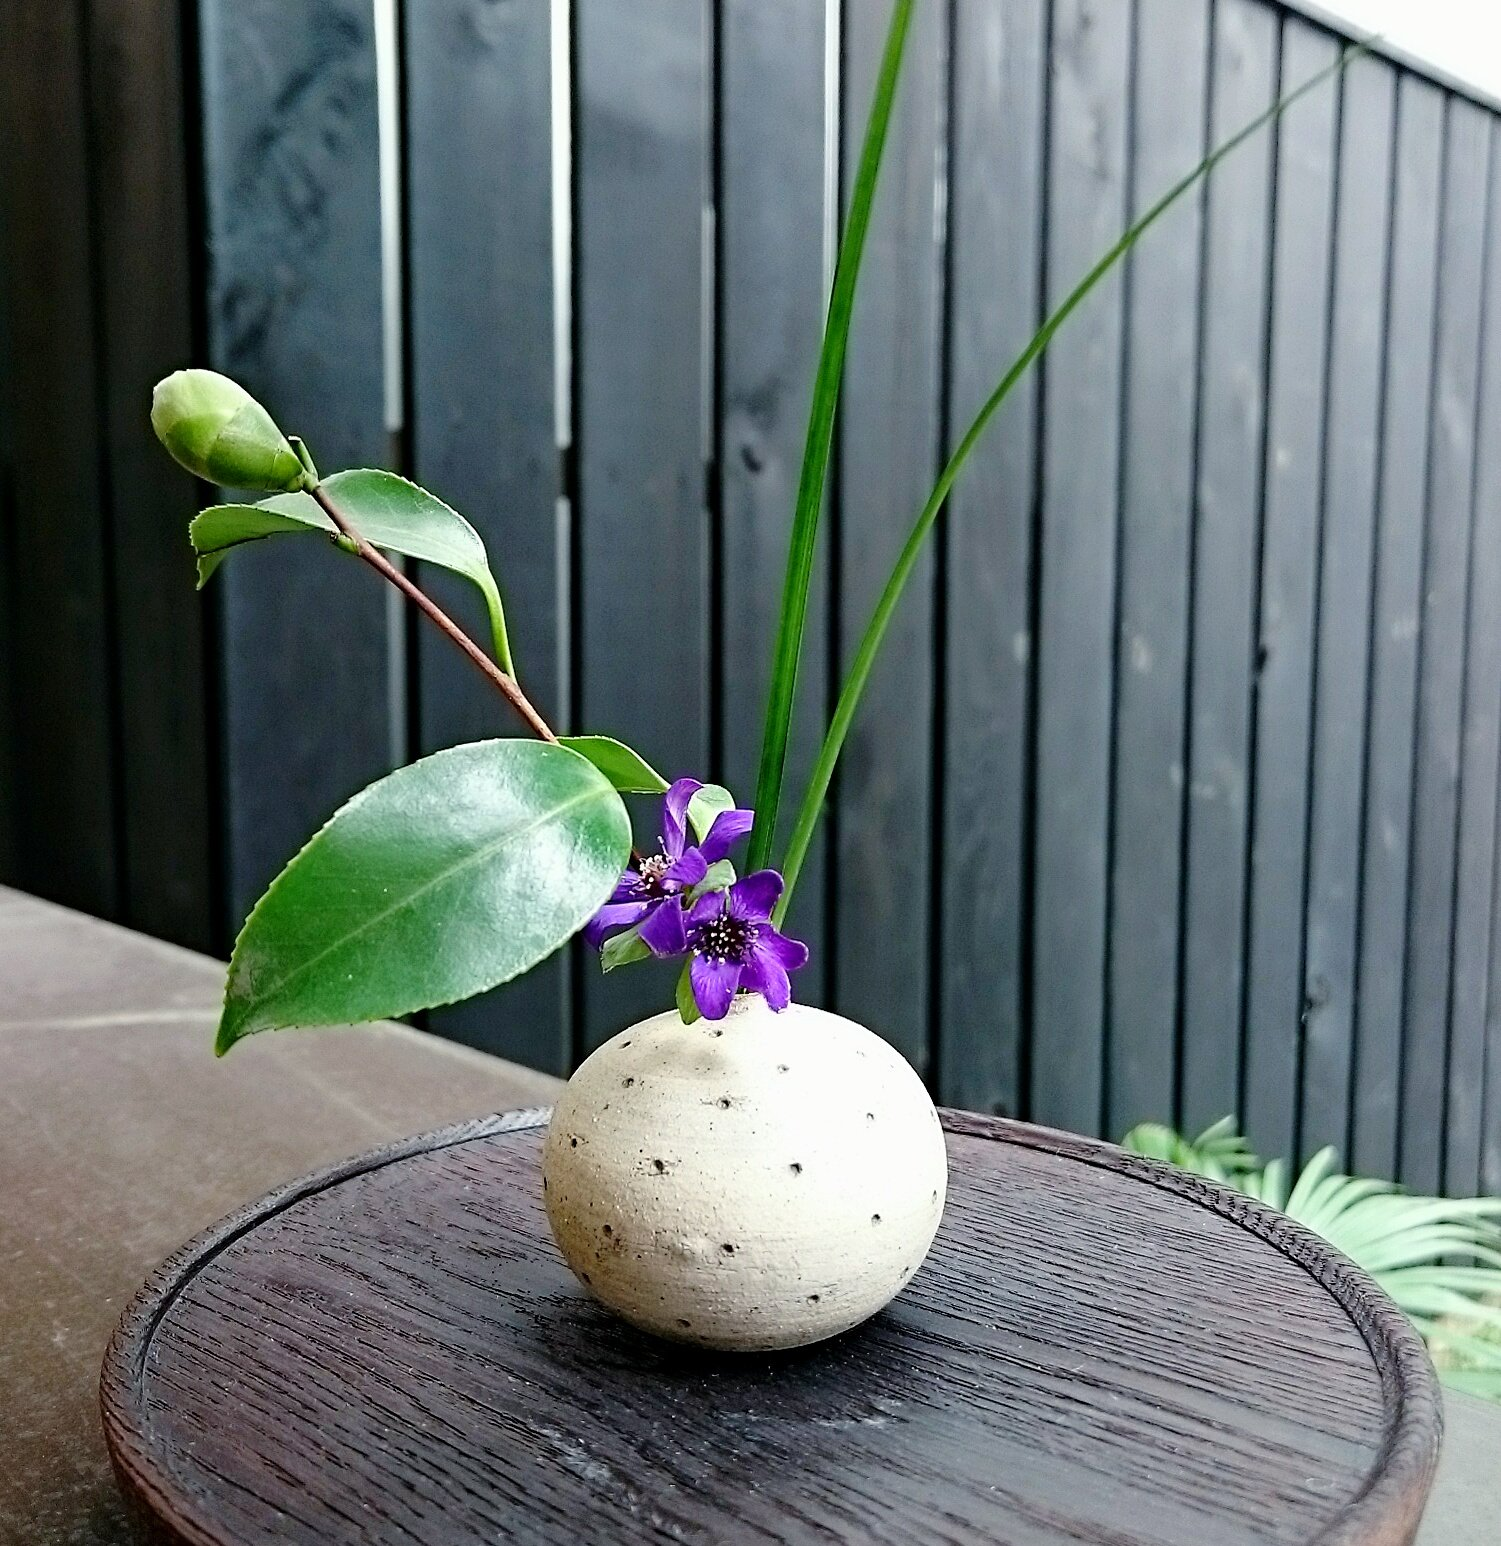 Flower Arrangements Basics: Ikebana Floral Design For Beginners- Cancelled